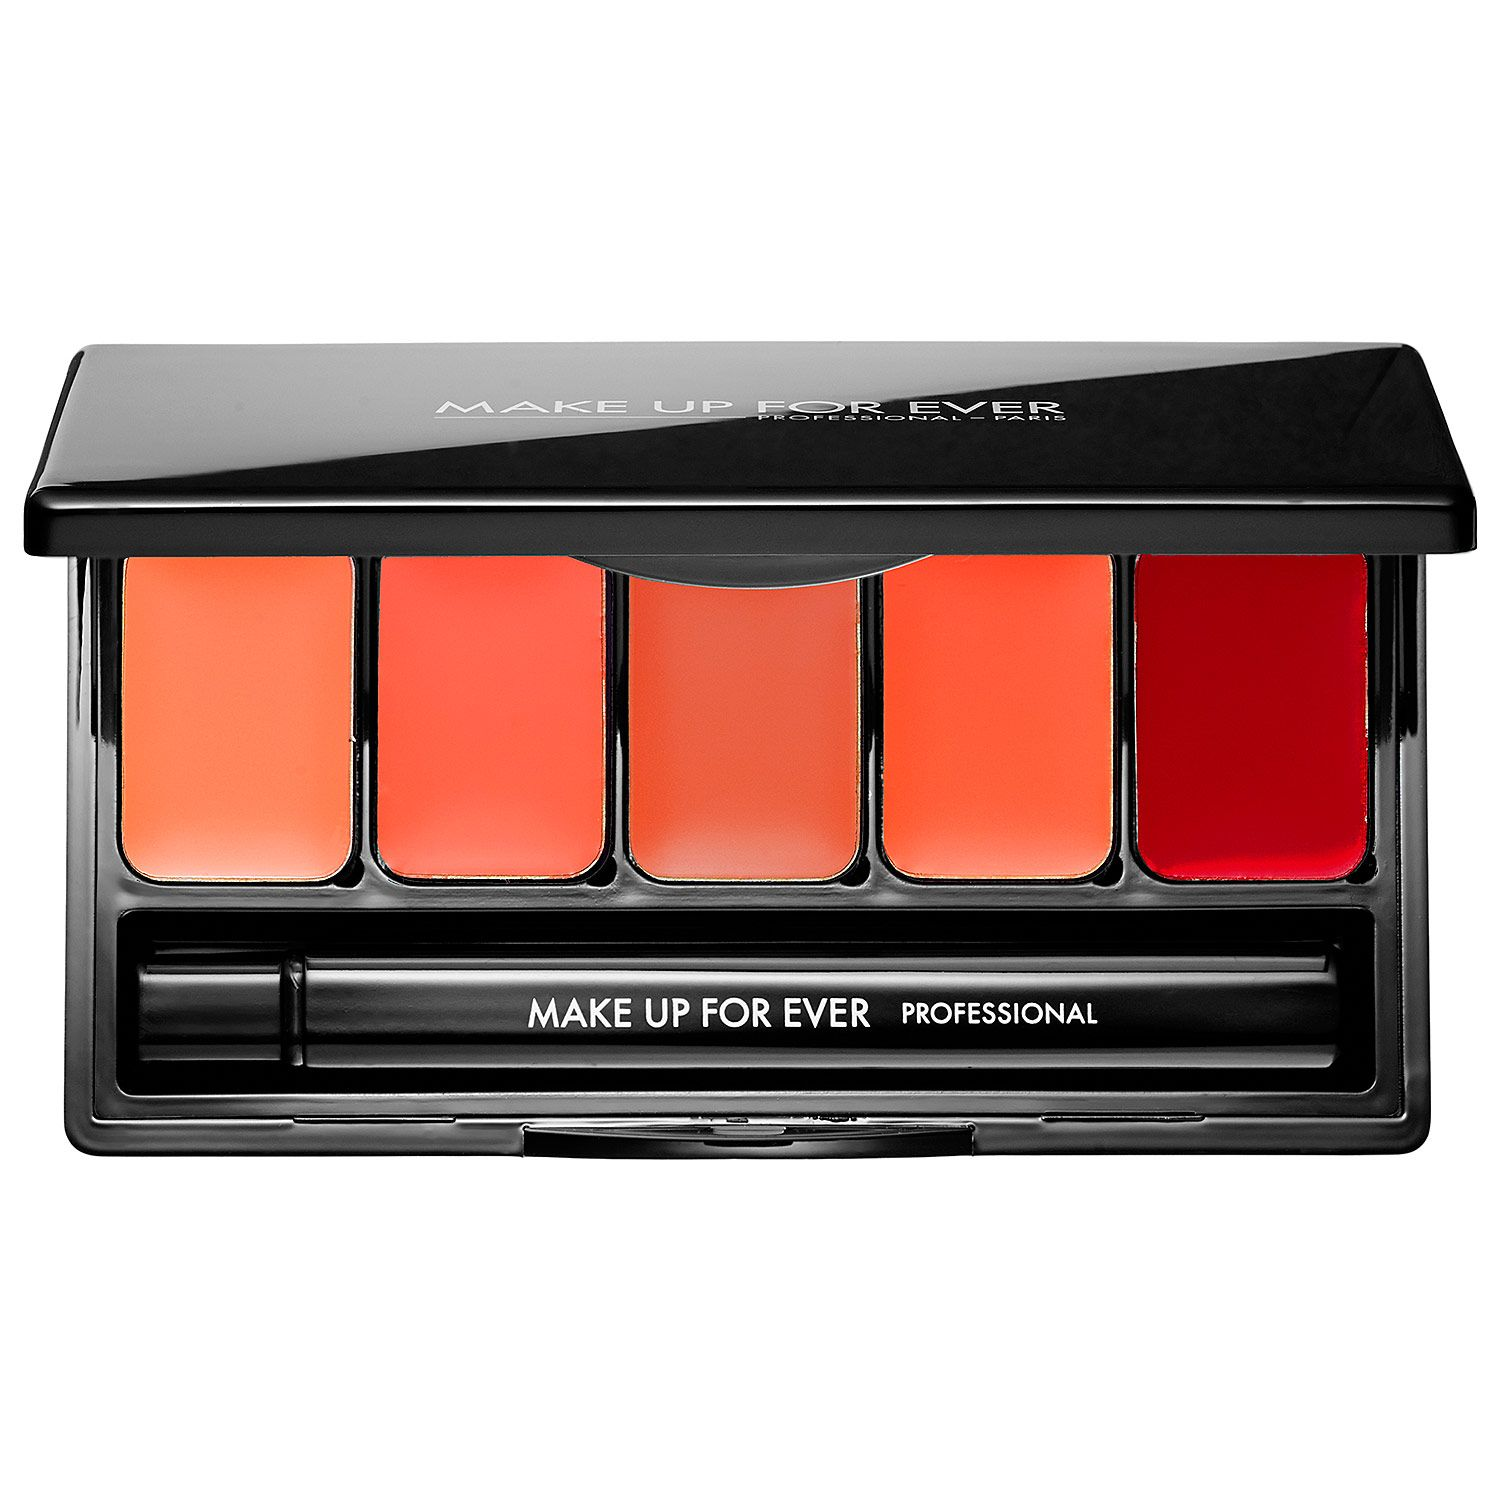 MAKE UP FOR EVER Rouge Artist Palette Sephora